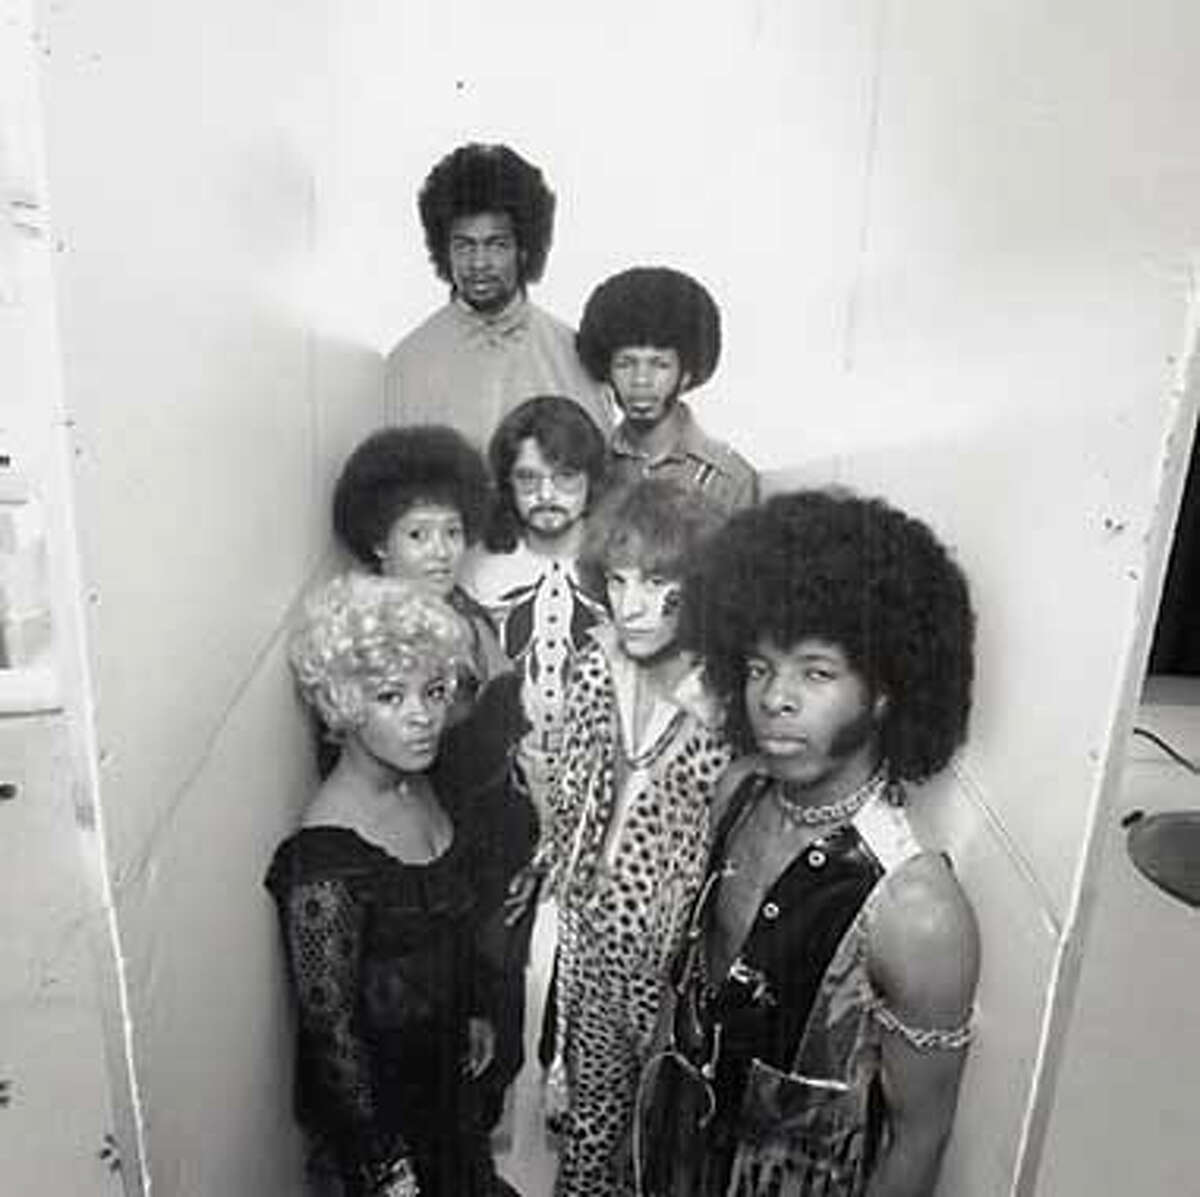 Number 1: Sly and the Family Stone: They changed the way music was played. Photo from Joel Selvin Collection